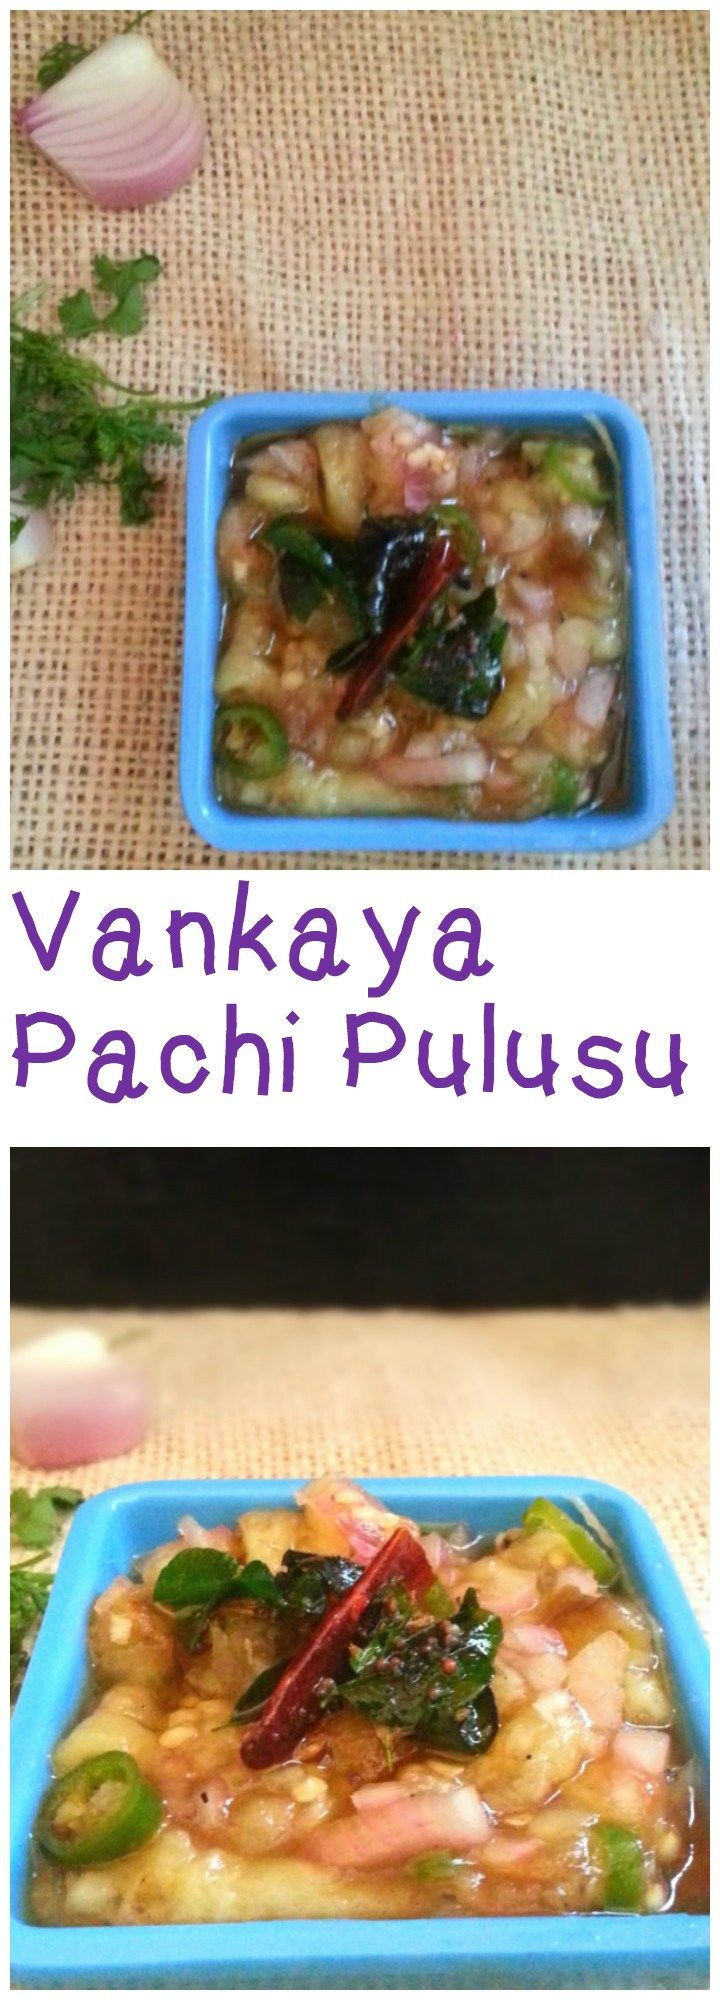 Vankaya Pachi Pulusu - An authentic Andhra side dish recipe containing many raw ingredients. The smoky flavour of the roasted brinjal makes it an interesting recipe